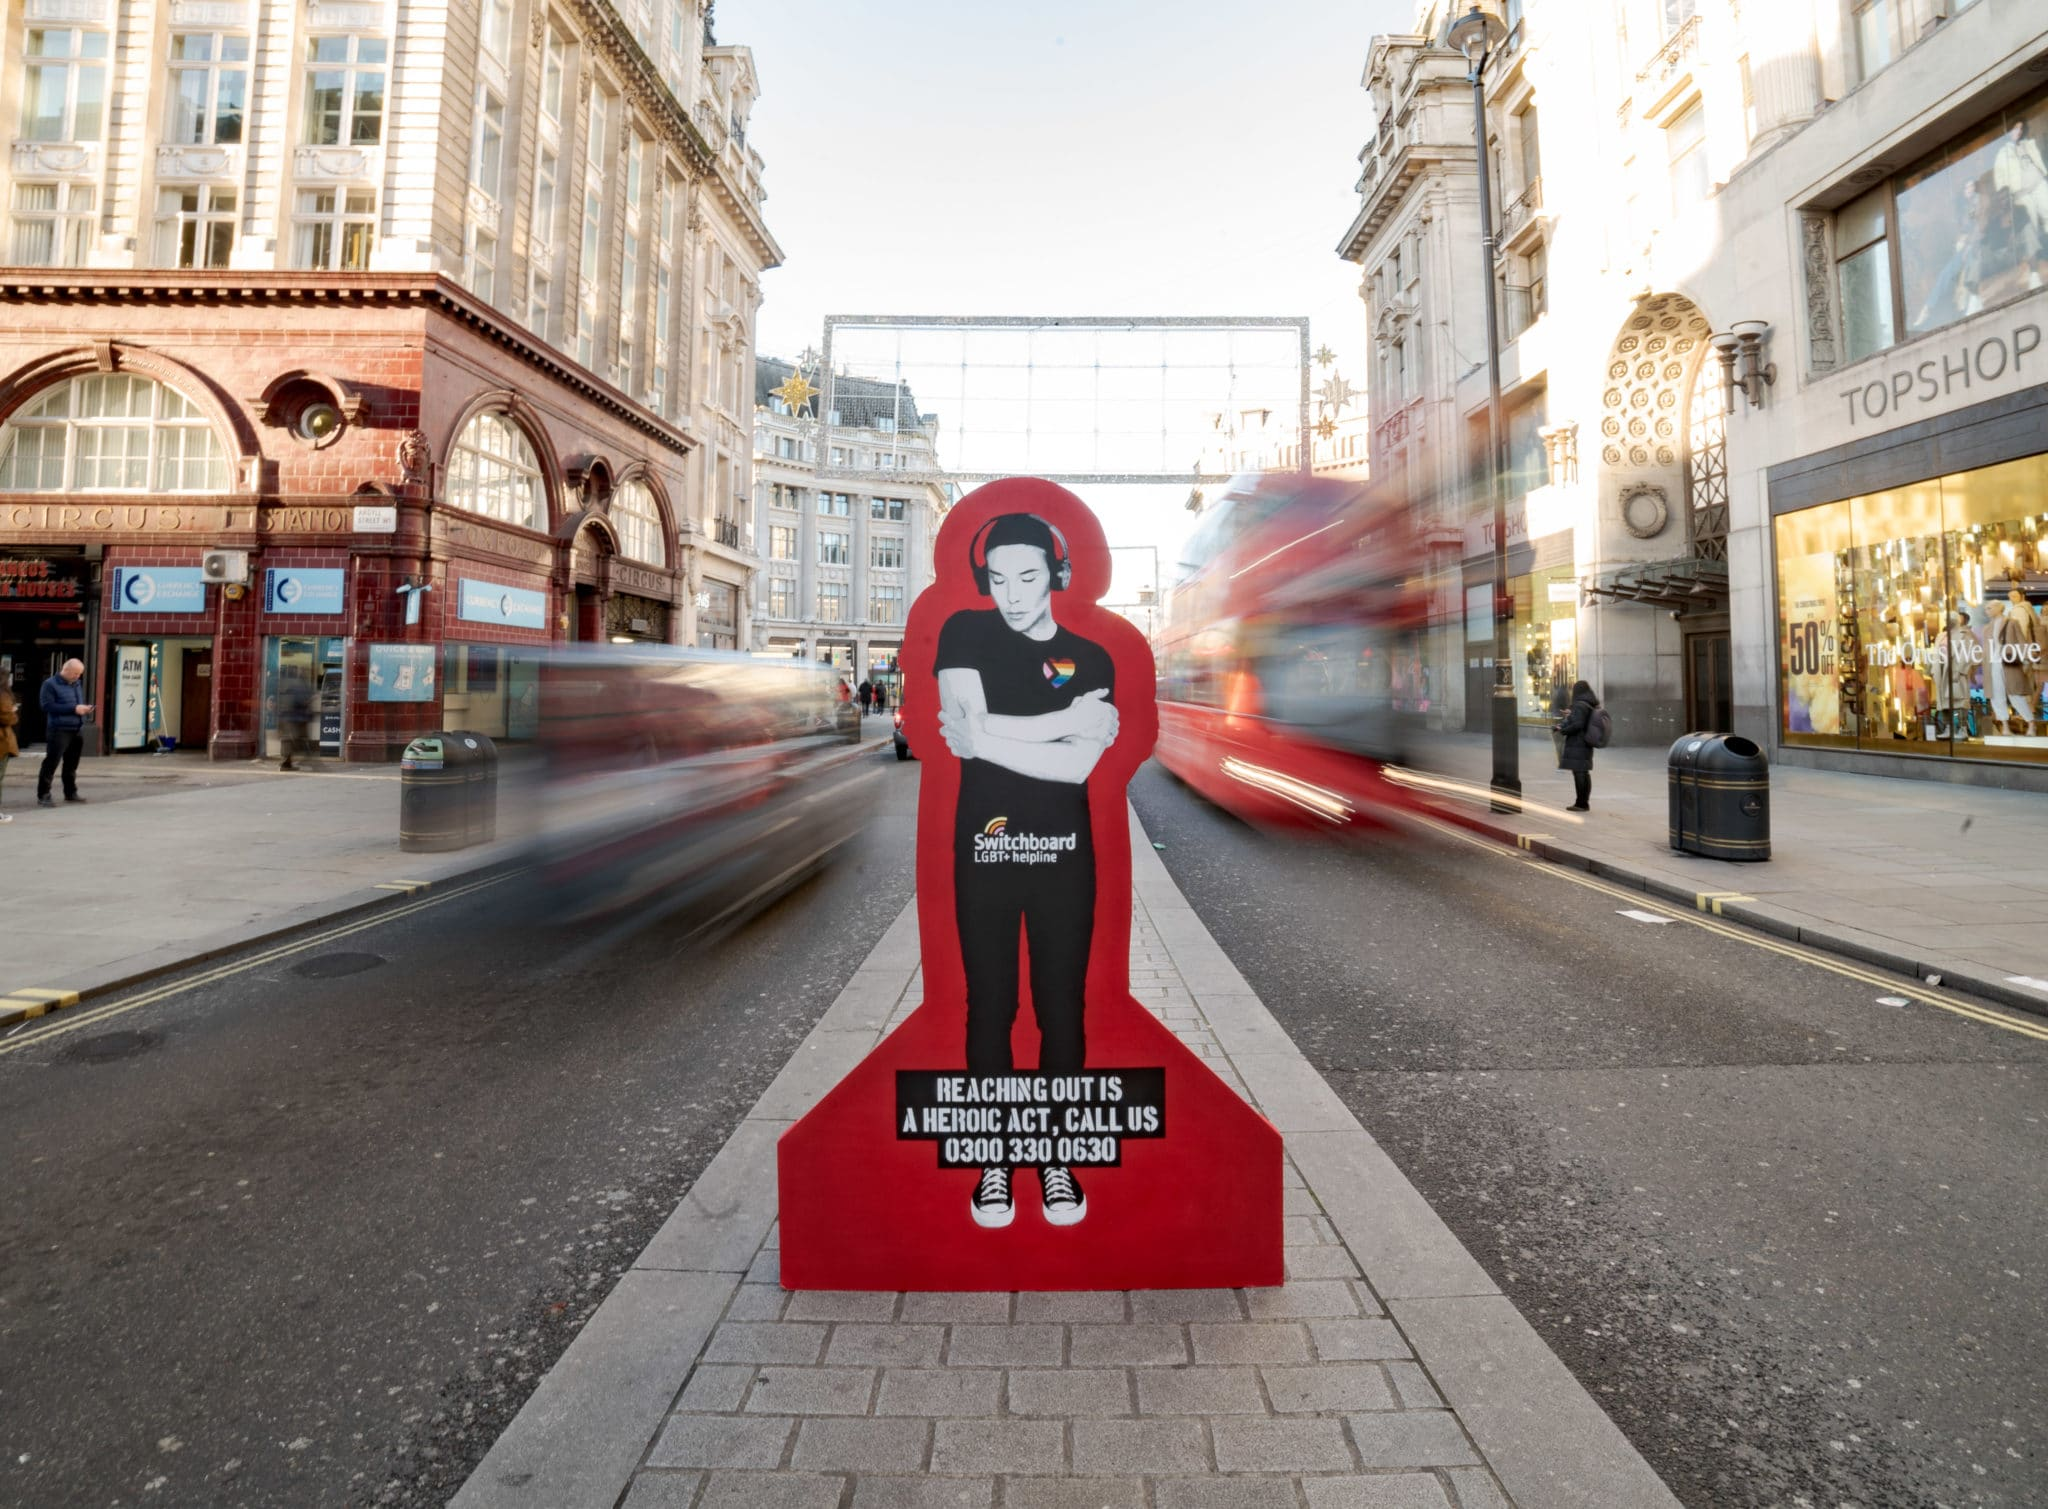 Christmas: Switchboard has teamed up with street artist Pegasus to create an artwork promoting the helpline number over the holidays.